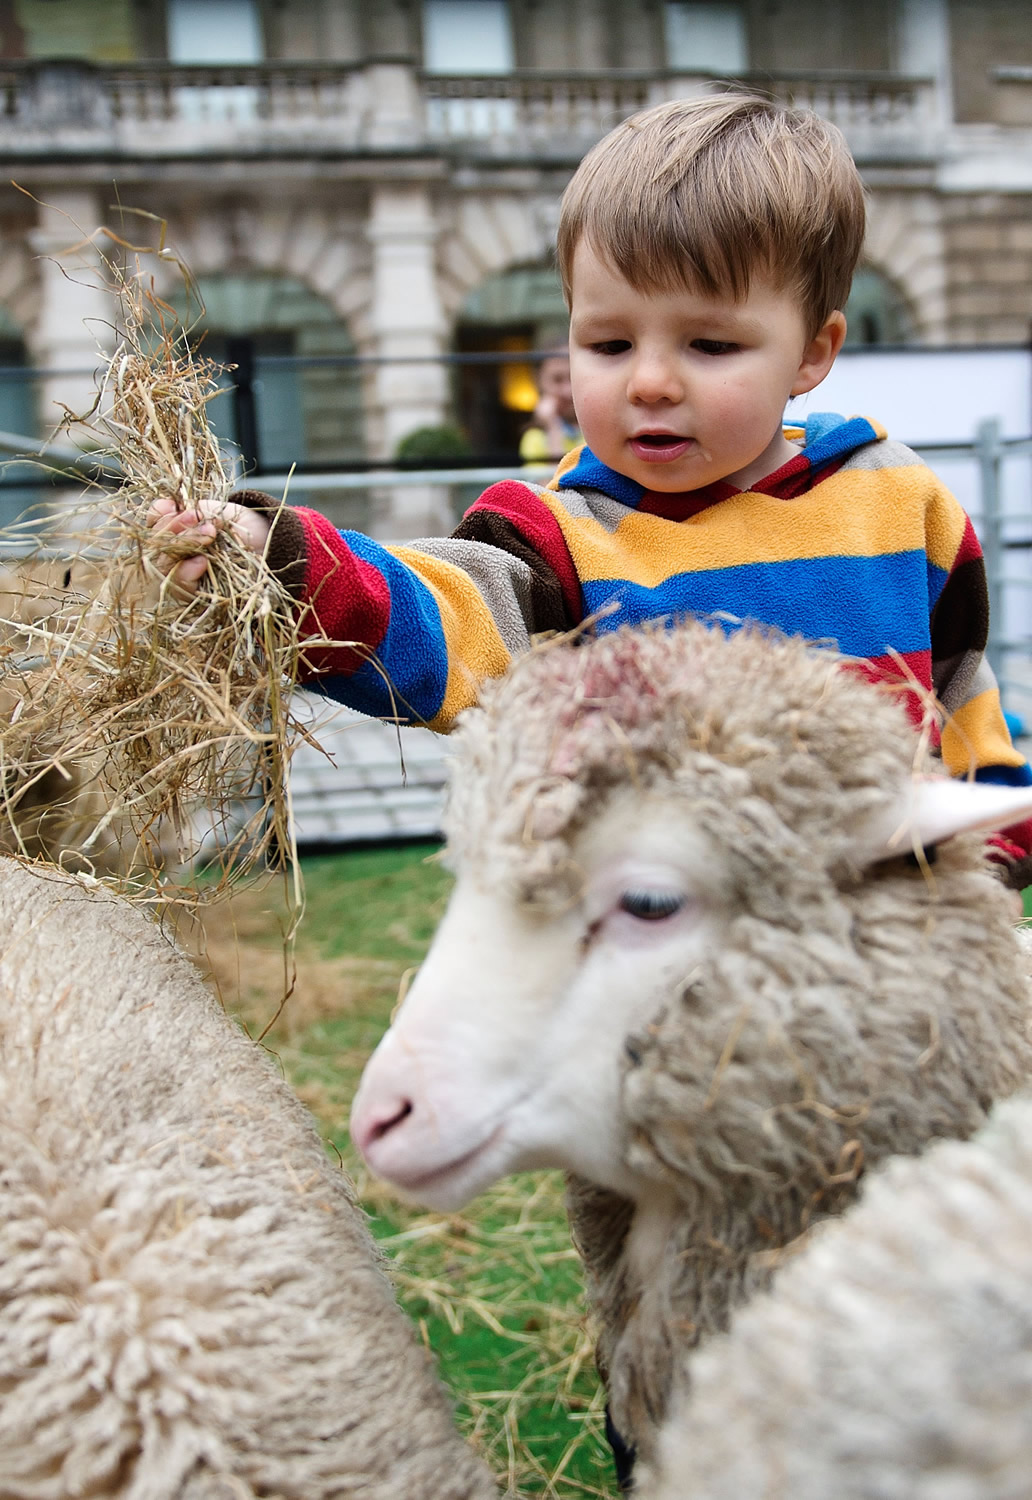 Wool Week Comes To A Close With Bowmont Merino Sheep Taking Over The Courtyard Of The Royal Academy